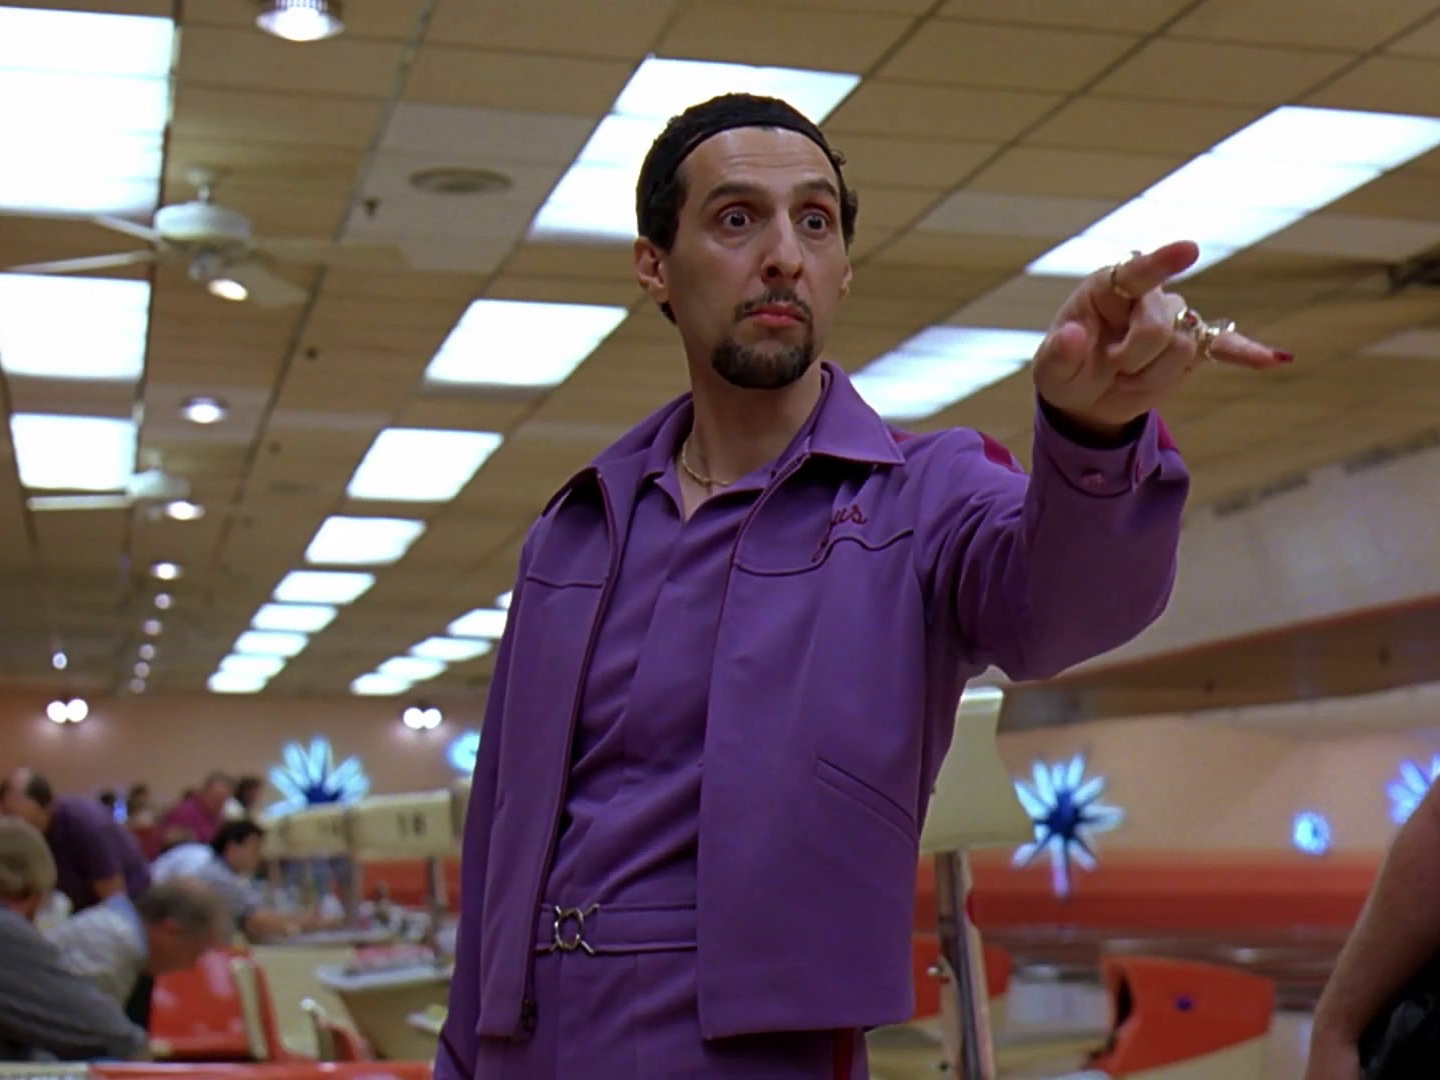 The Big Lebowski: Bowling With 'The Jesus'